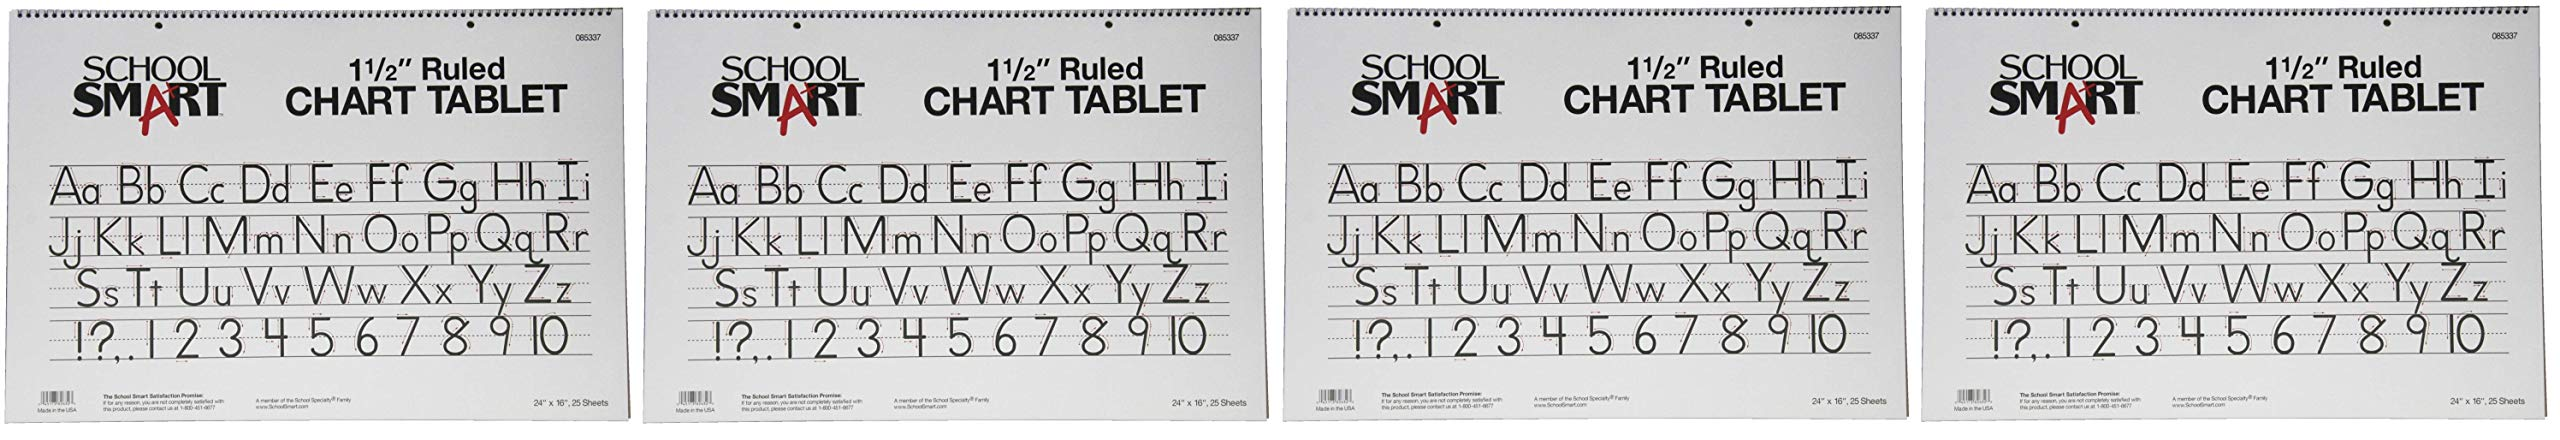 School Smart Chart Tablet, 24 x 16 Inches, 1-1/2 Inch Skip Line, 25 Sheets (Fоur Paсk)